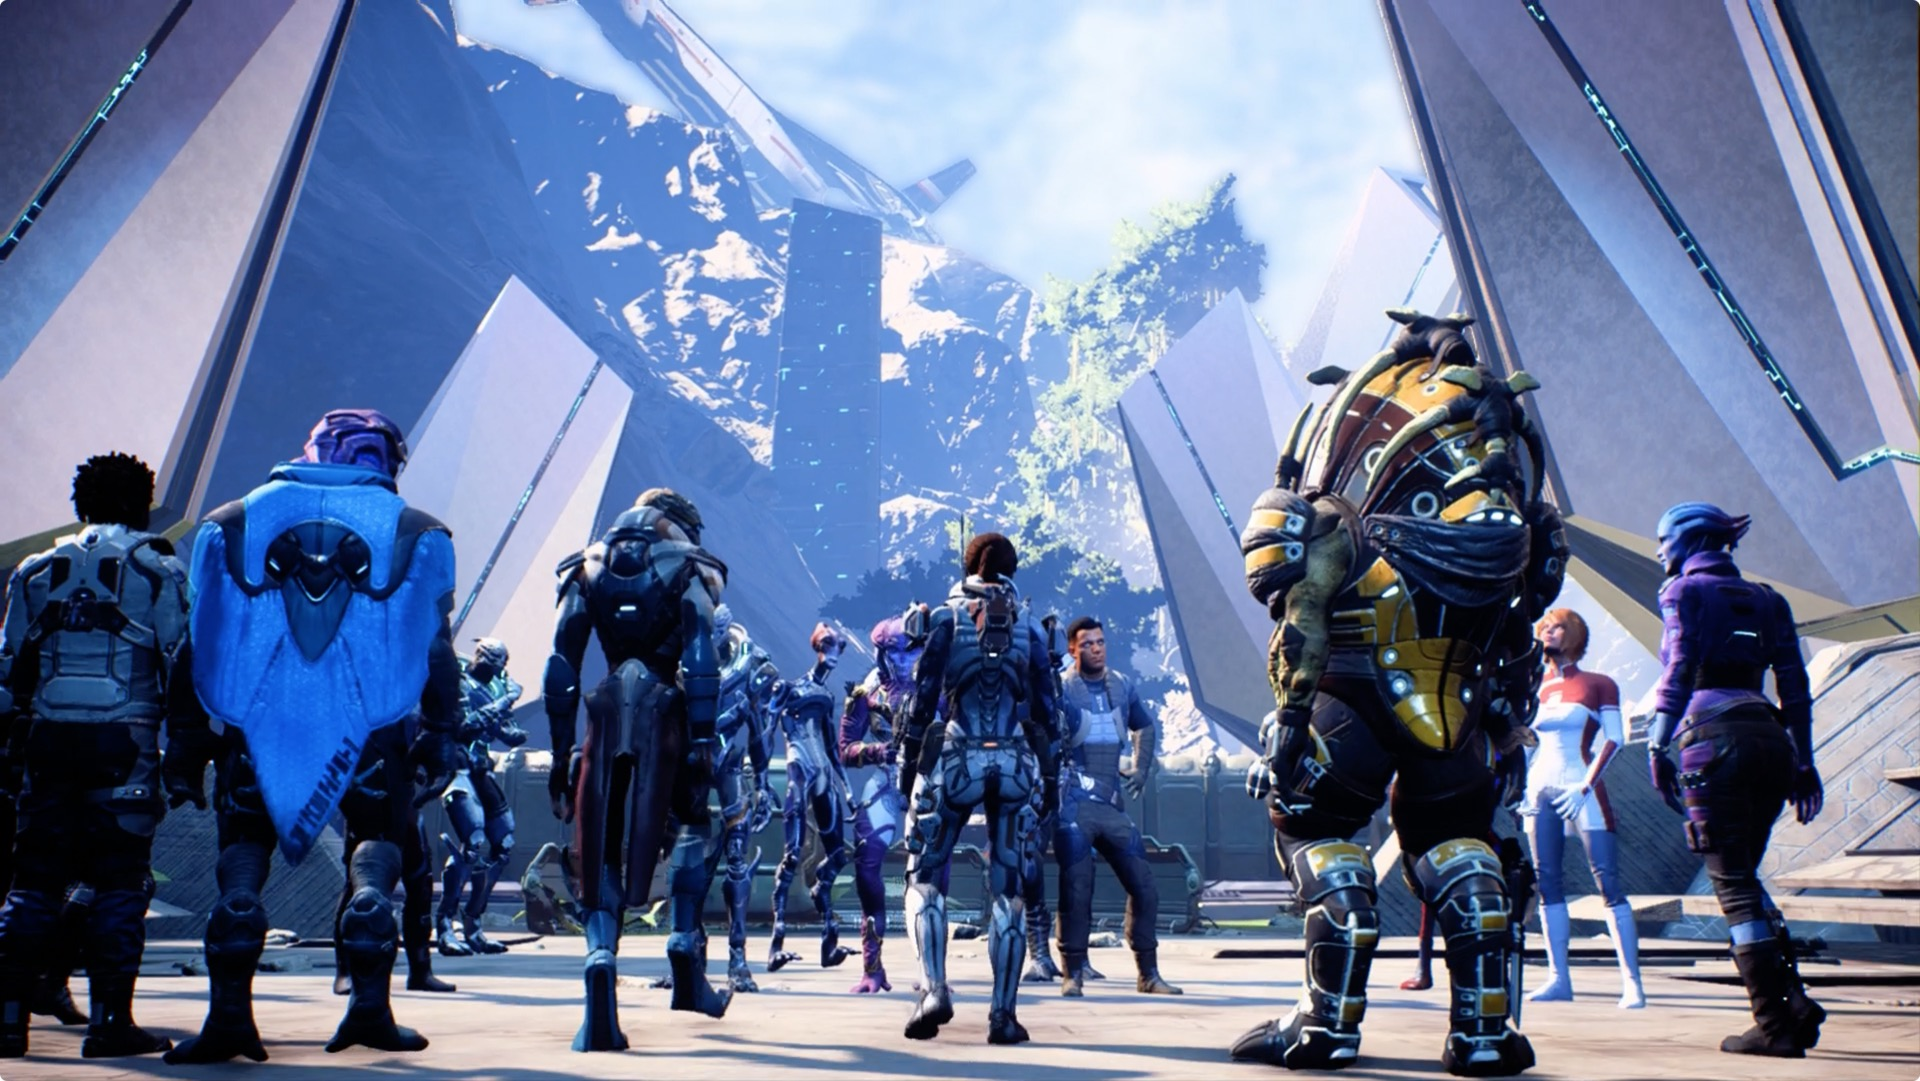 Mass Effect: Andromeda guide: How to build the strongest team for the final battle